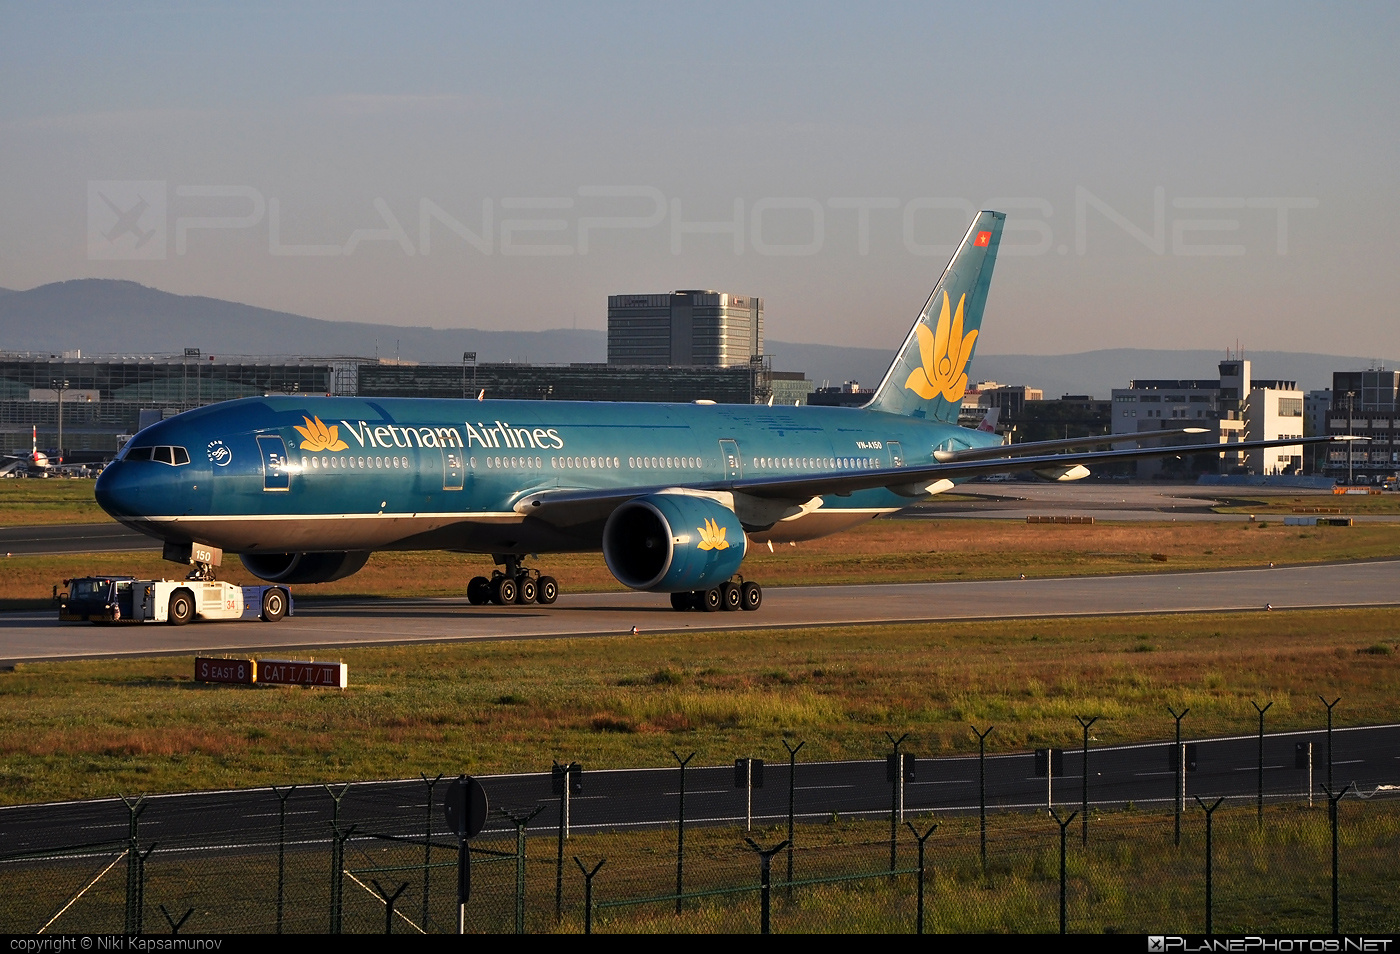 Boeing 777-200ER - VN-A150 operated by Vietnam Airlines #b777 #b777er #boeing #boeing777 #tripleseven